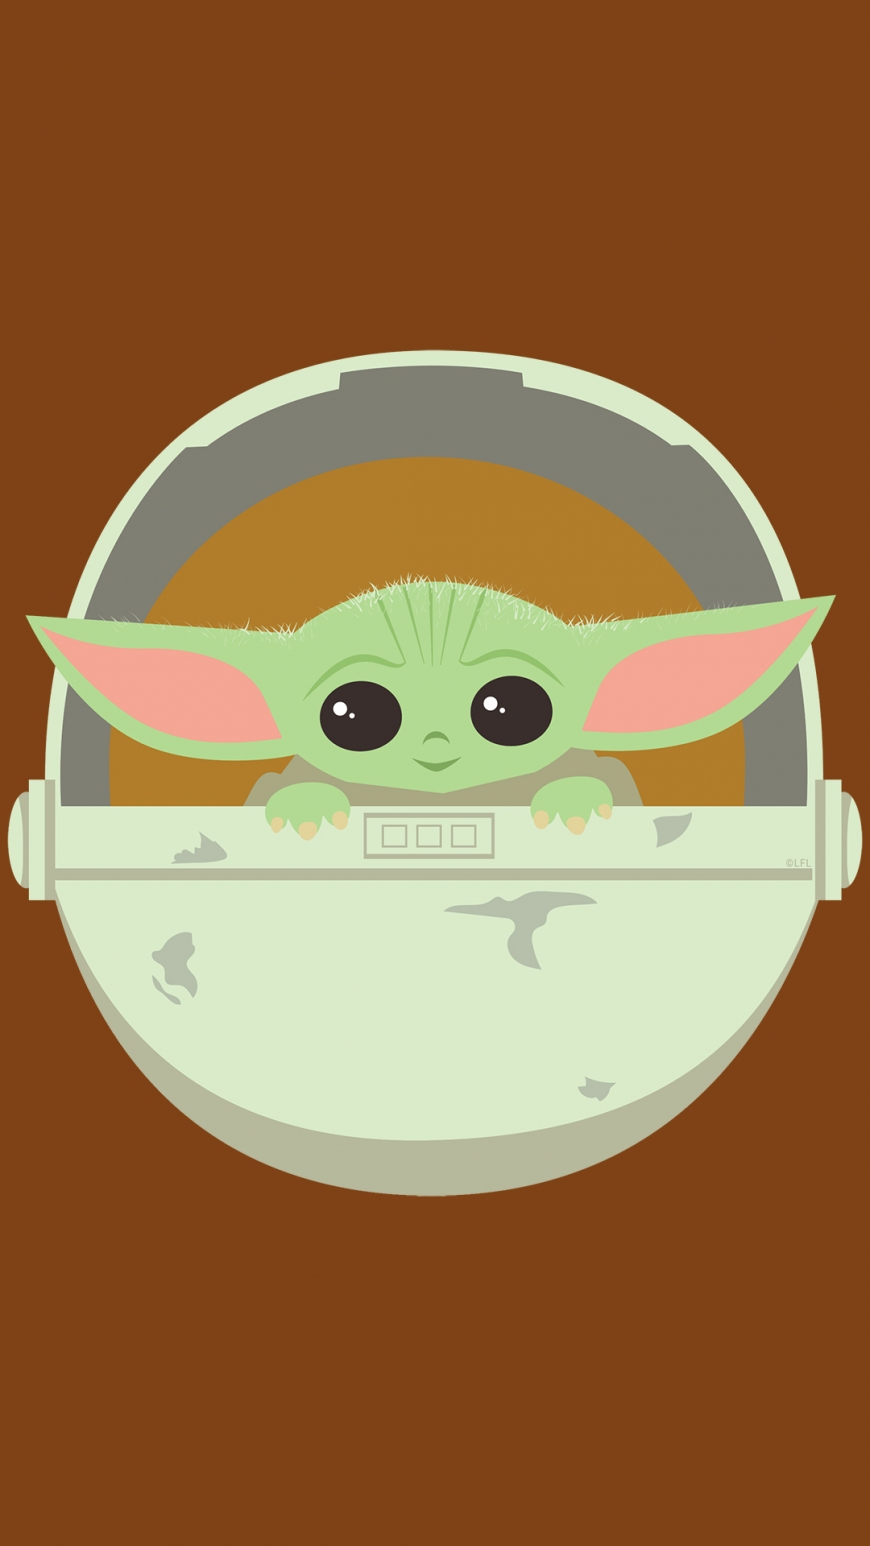 Floating Baby Yoda wallpaper